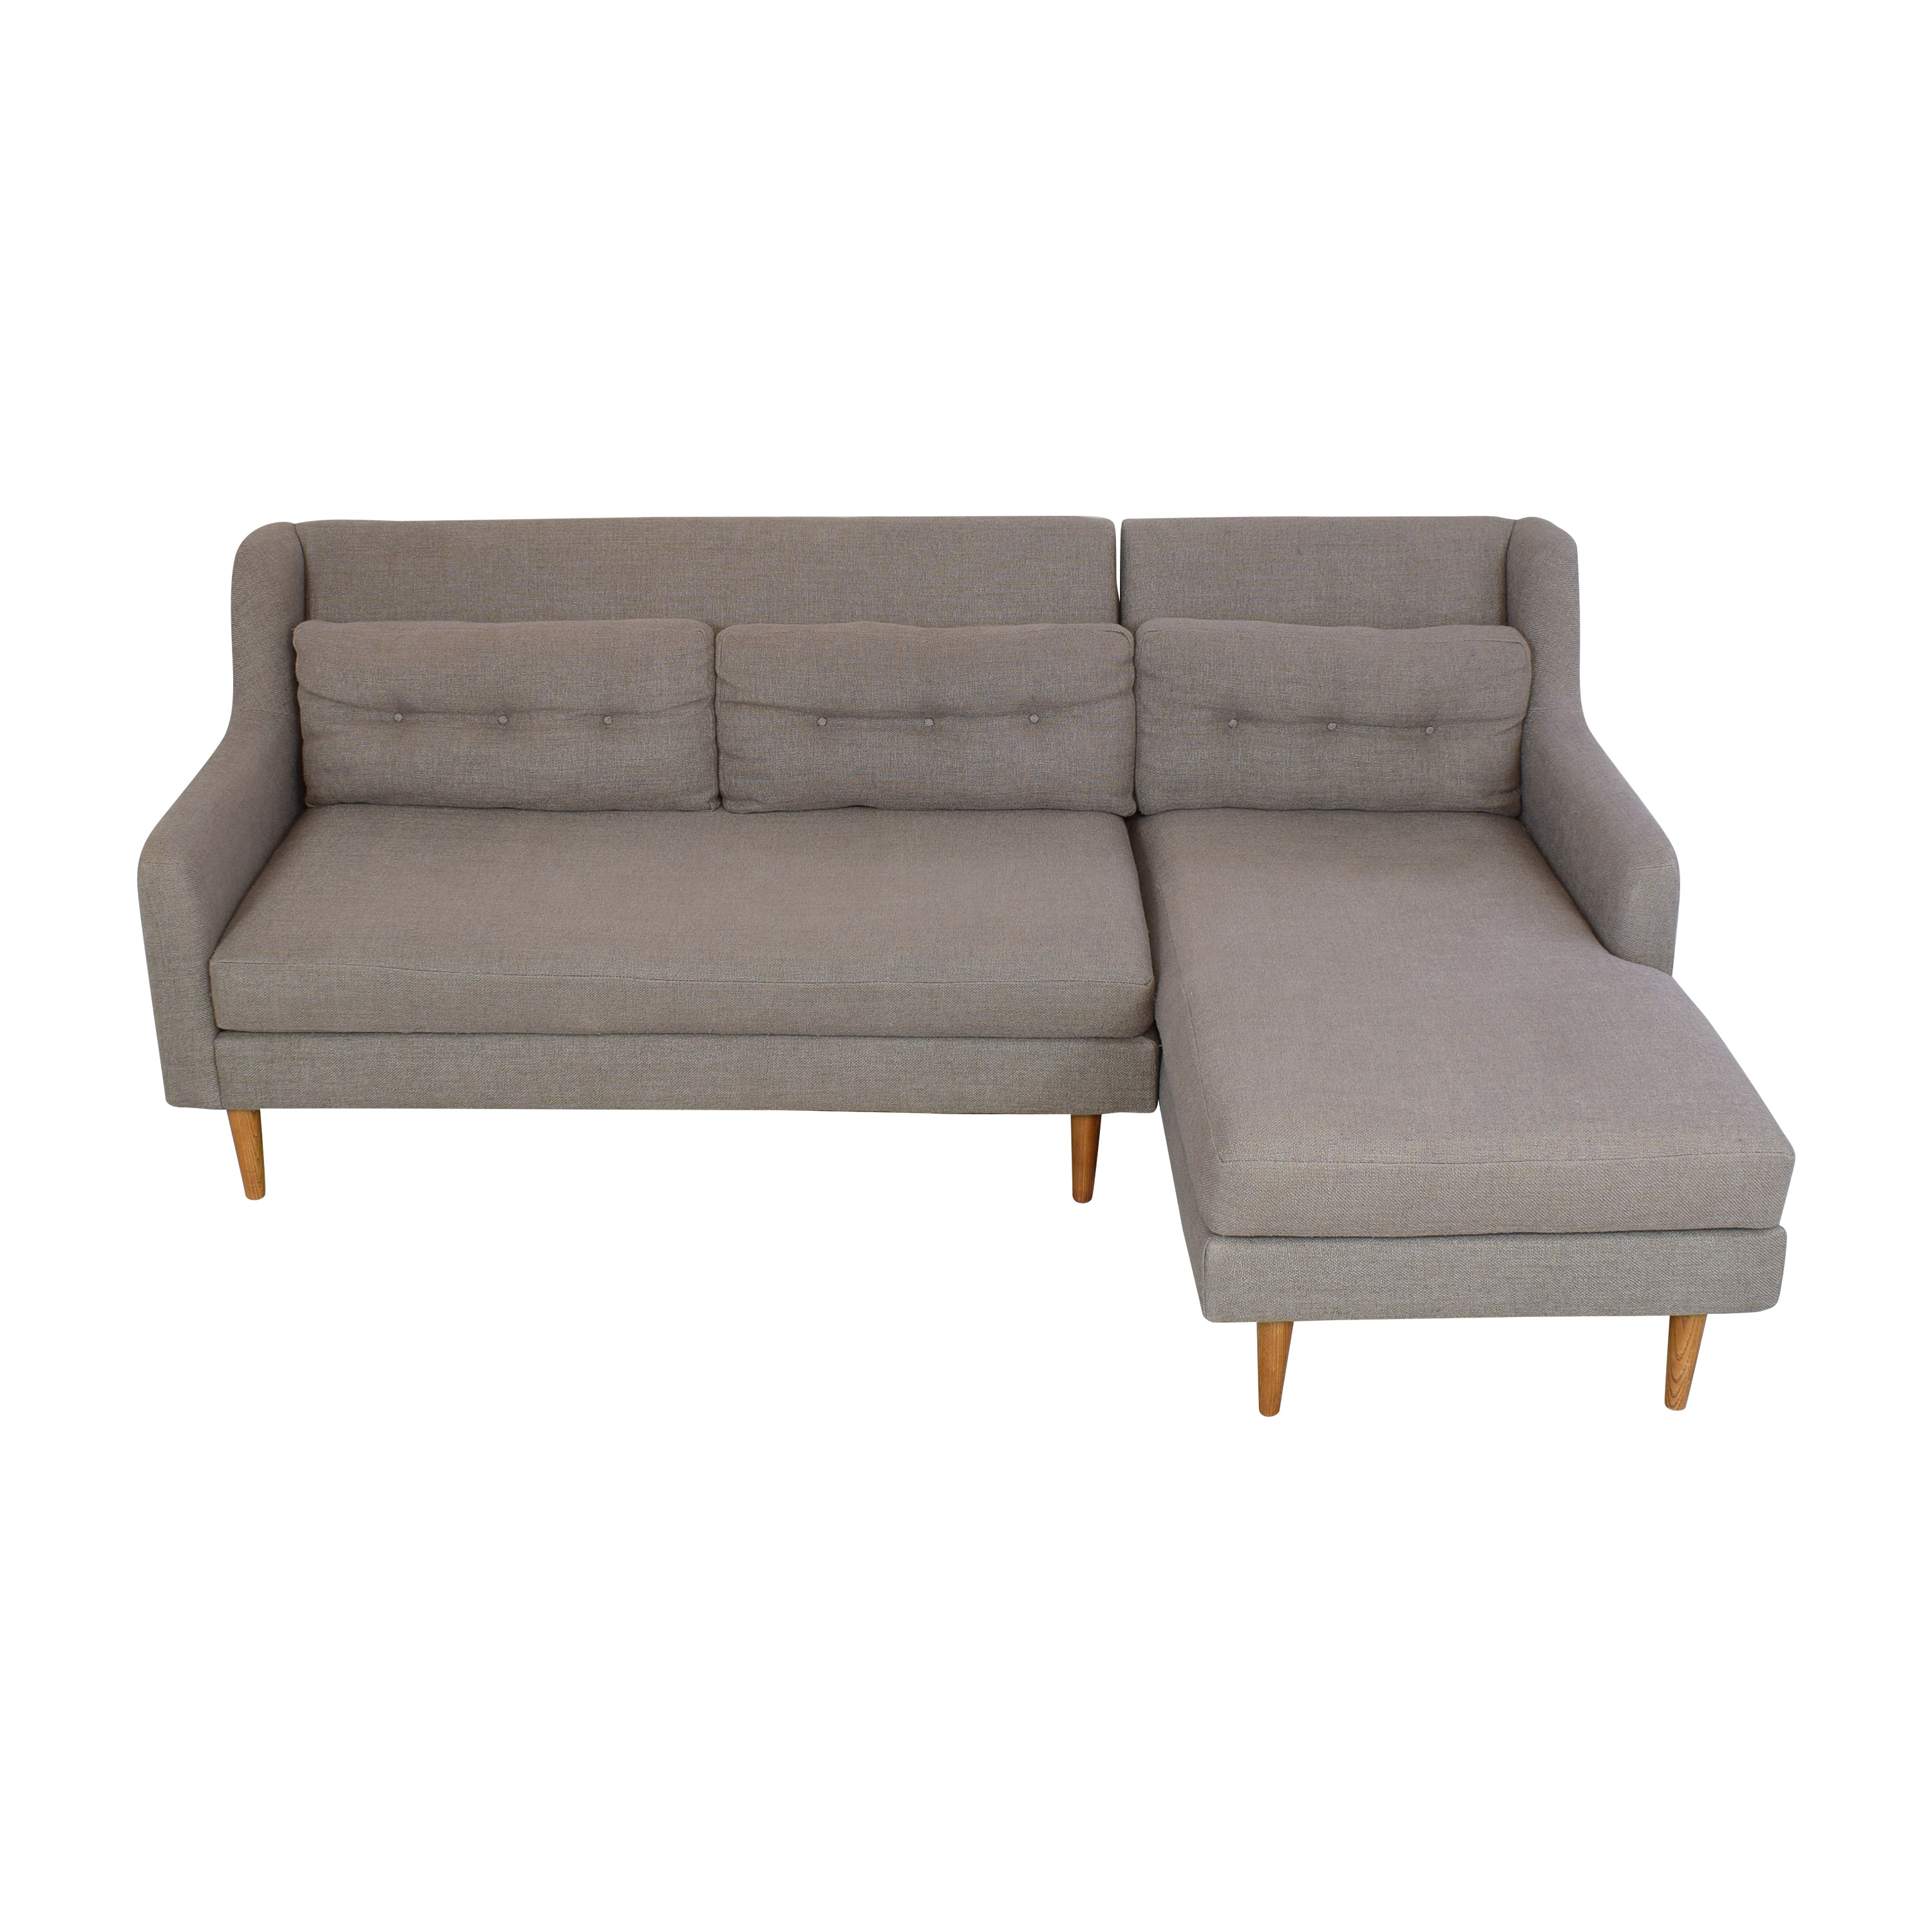 buy West Elm West Elm Crosby Two Piece Chaise Sectional Sofa online